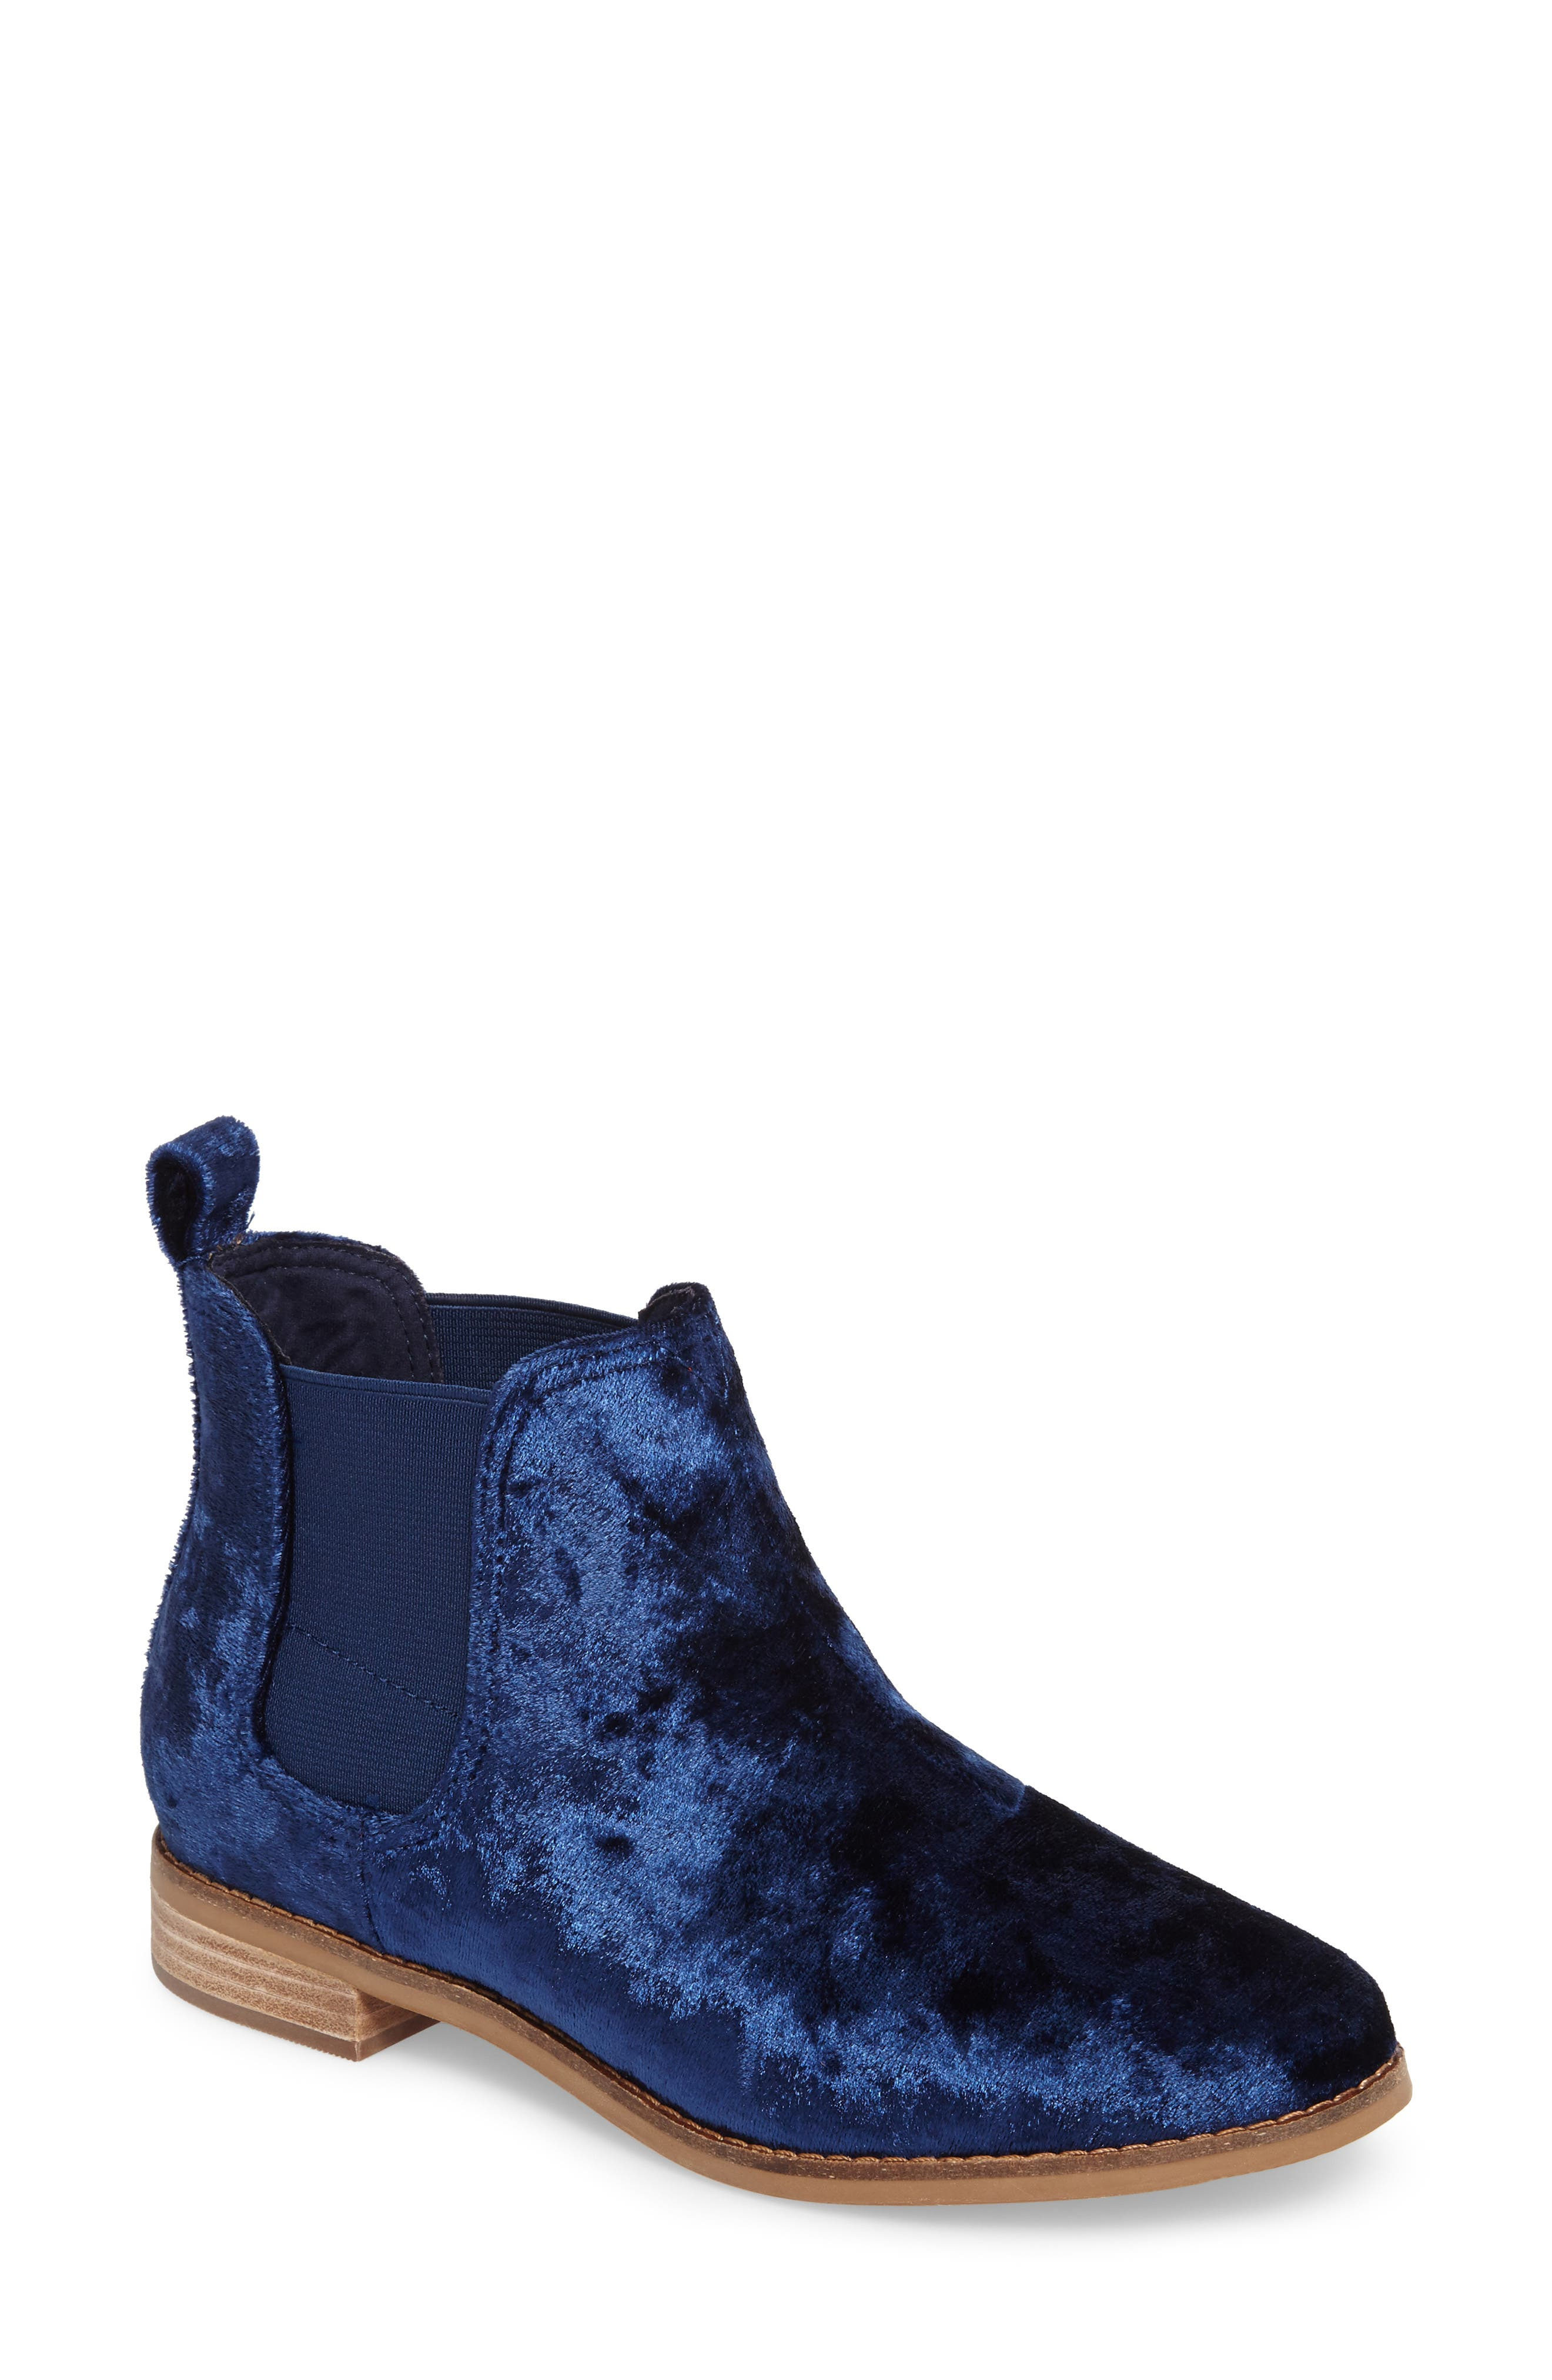 Ella Bootie,                             Main thumbnail 1, color,                             Navy Fabric